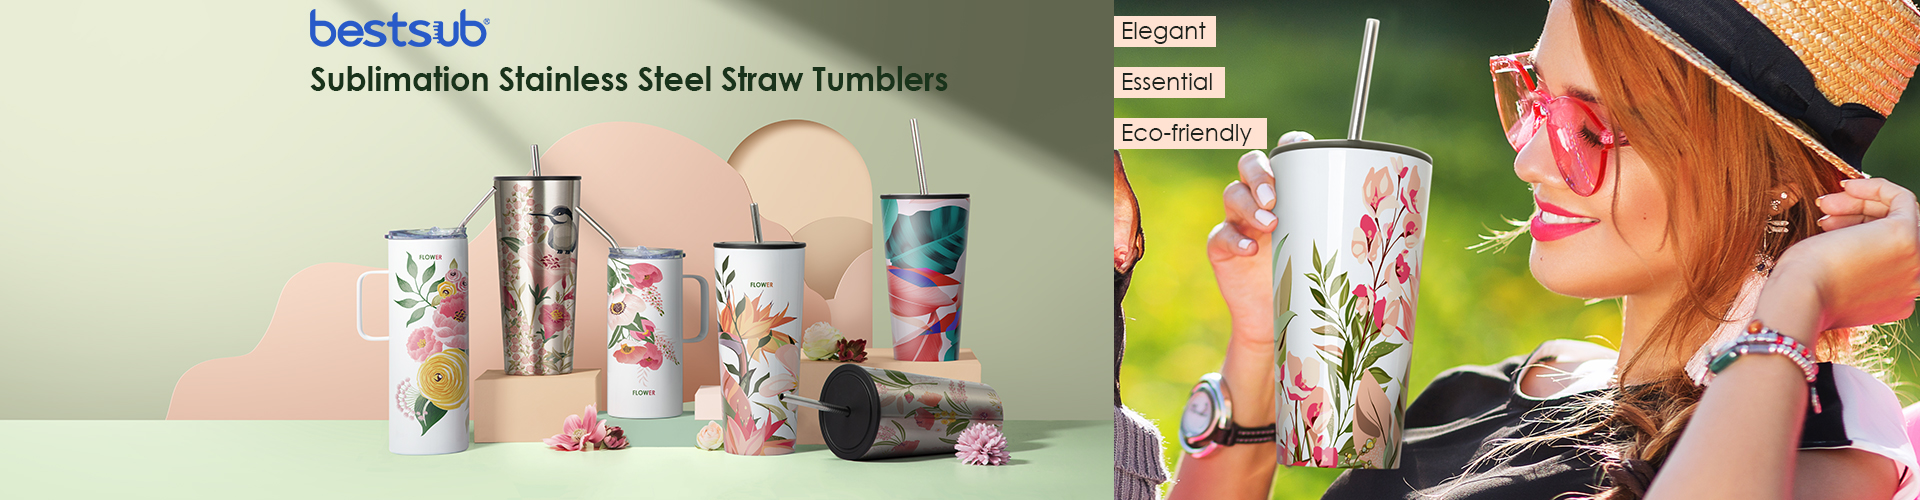 2020-11-11_Sublimation_Stainless_Steel_Straw_Tumblers_new_web